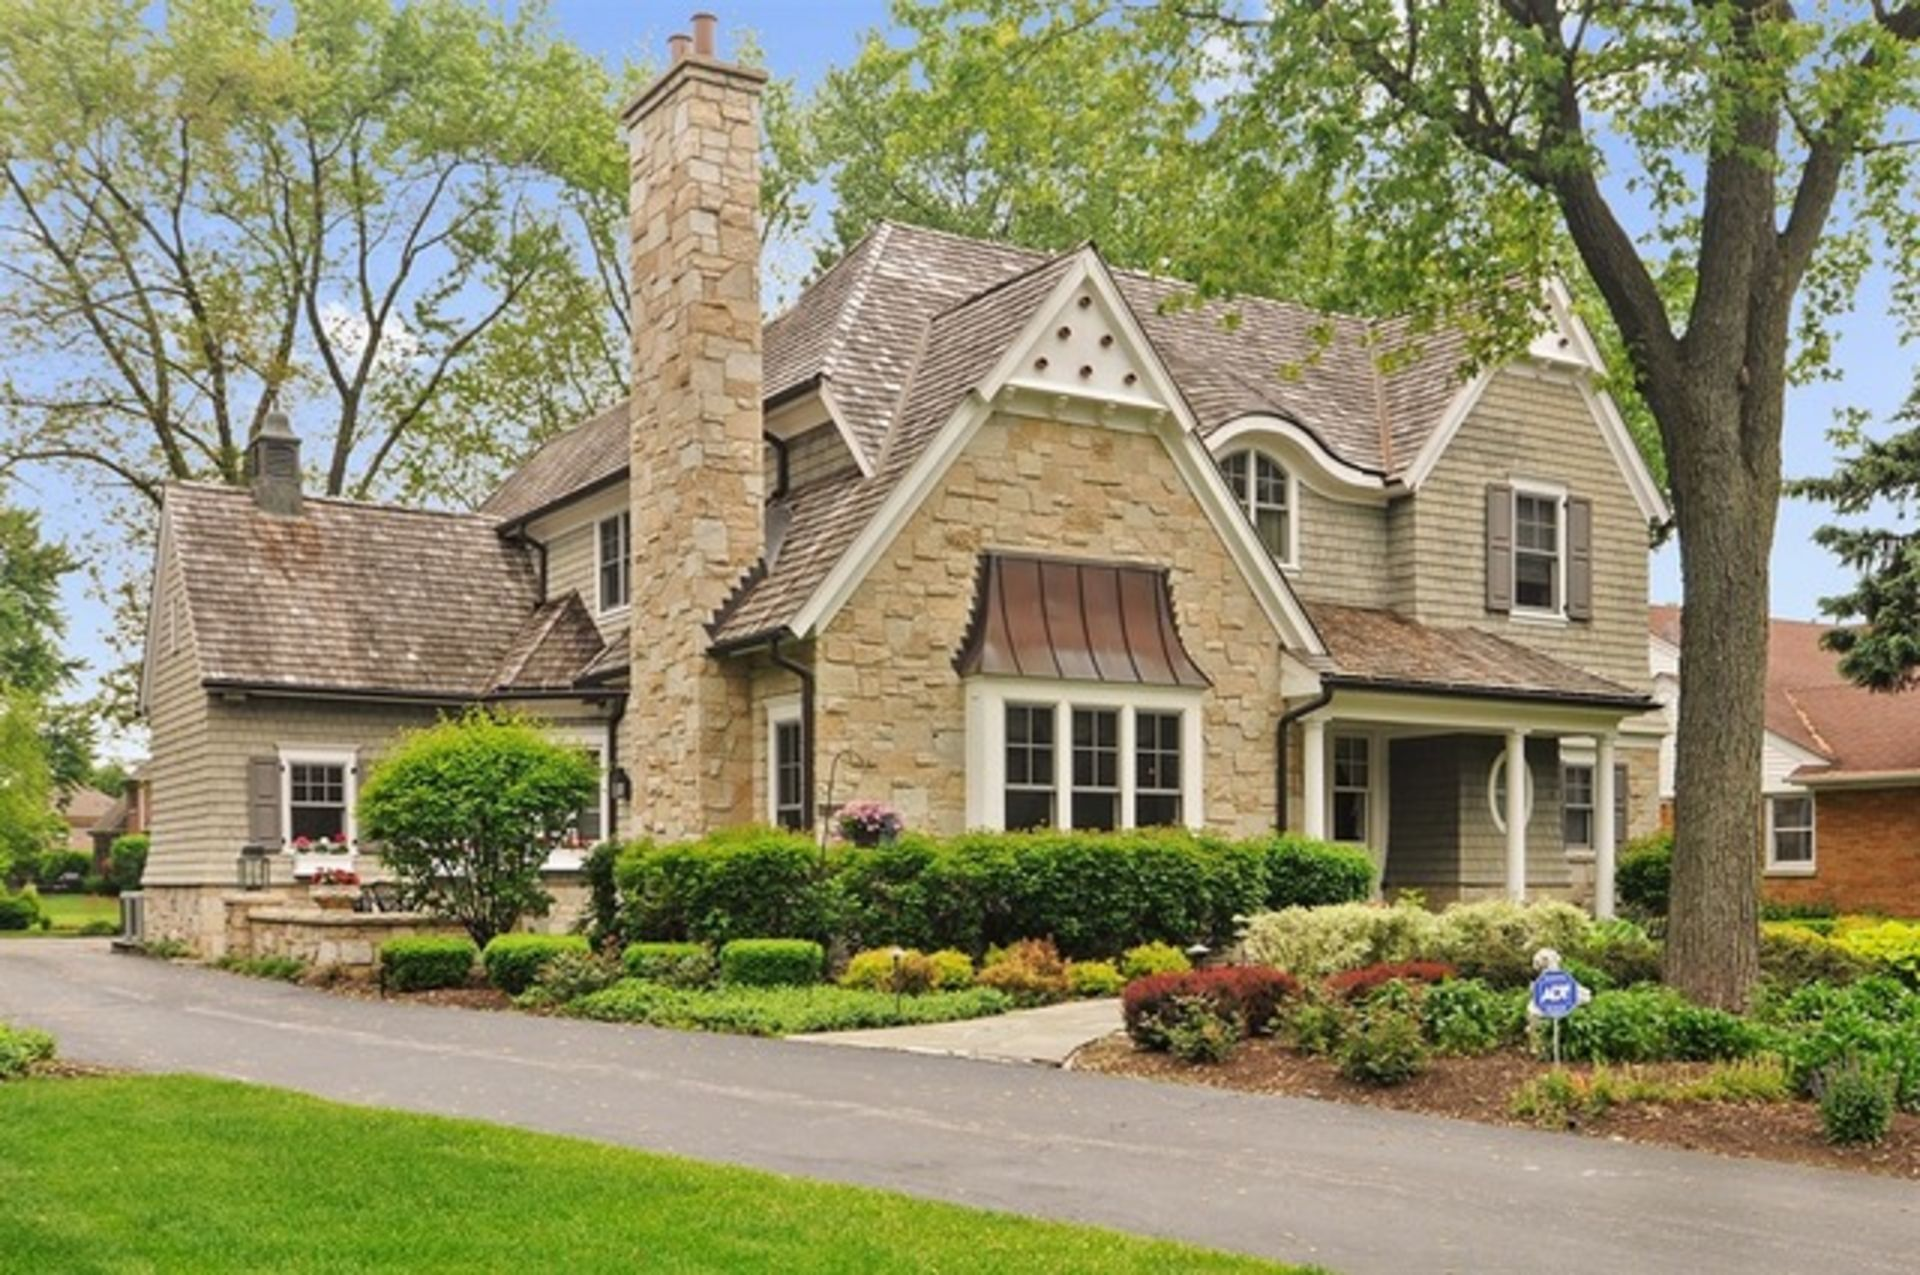 3 Most Expensive Homes for Sale in Arlington Heights